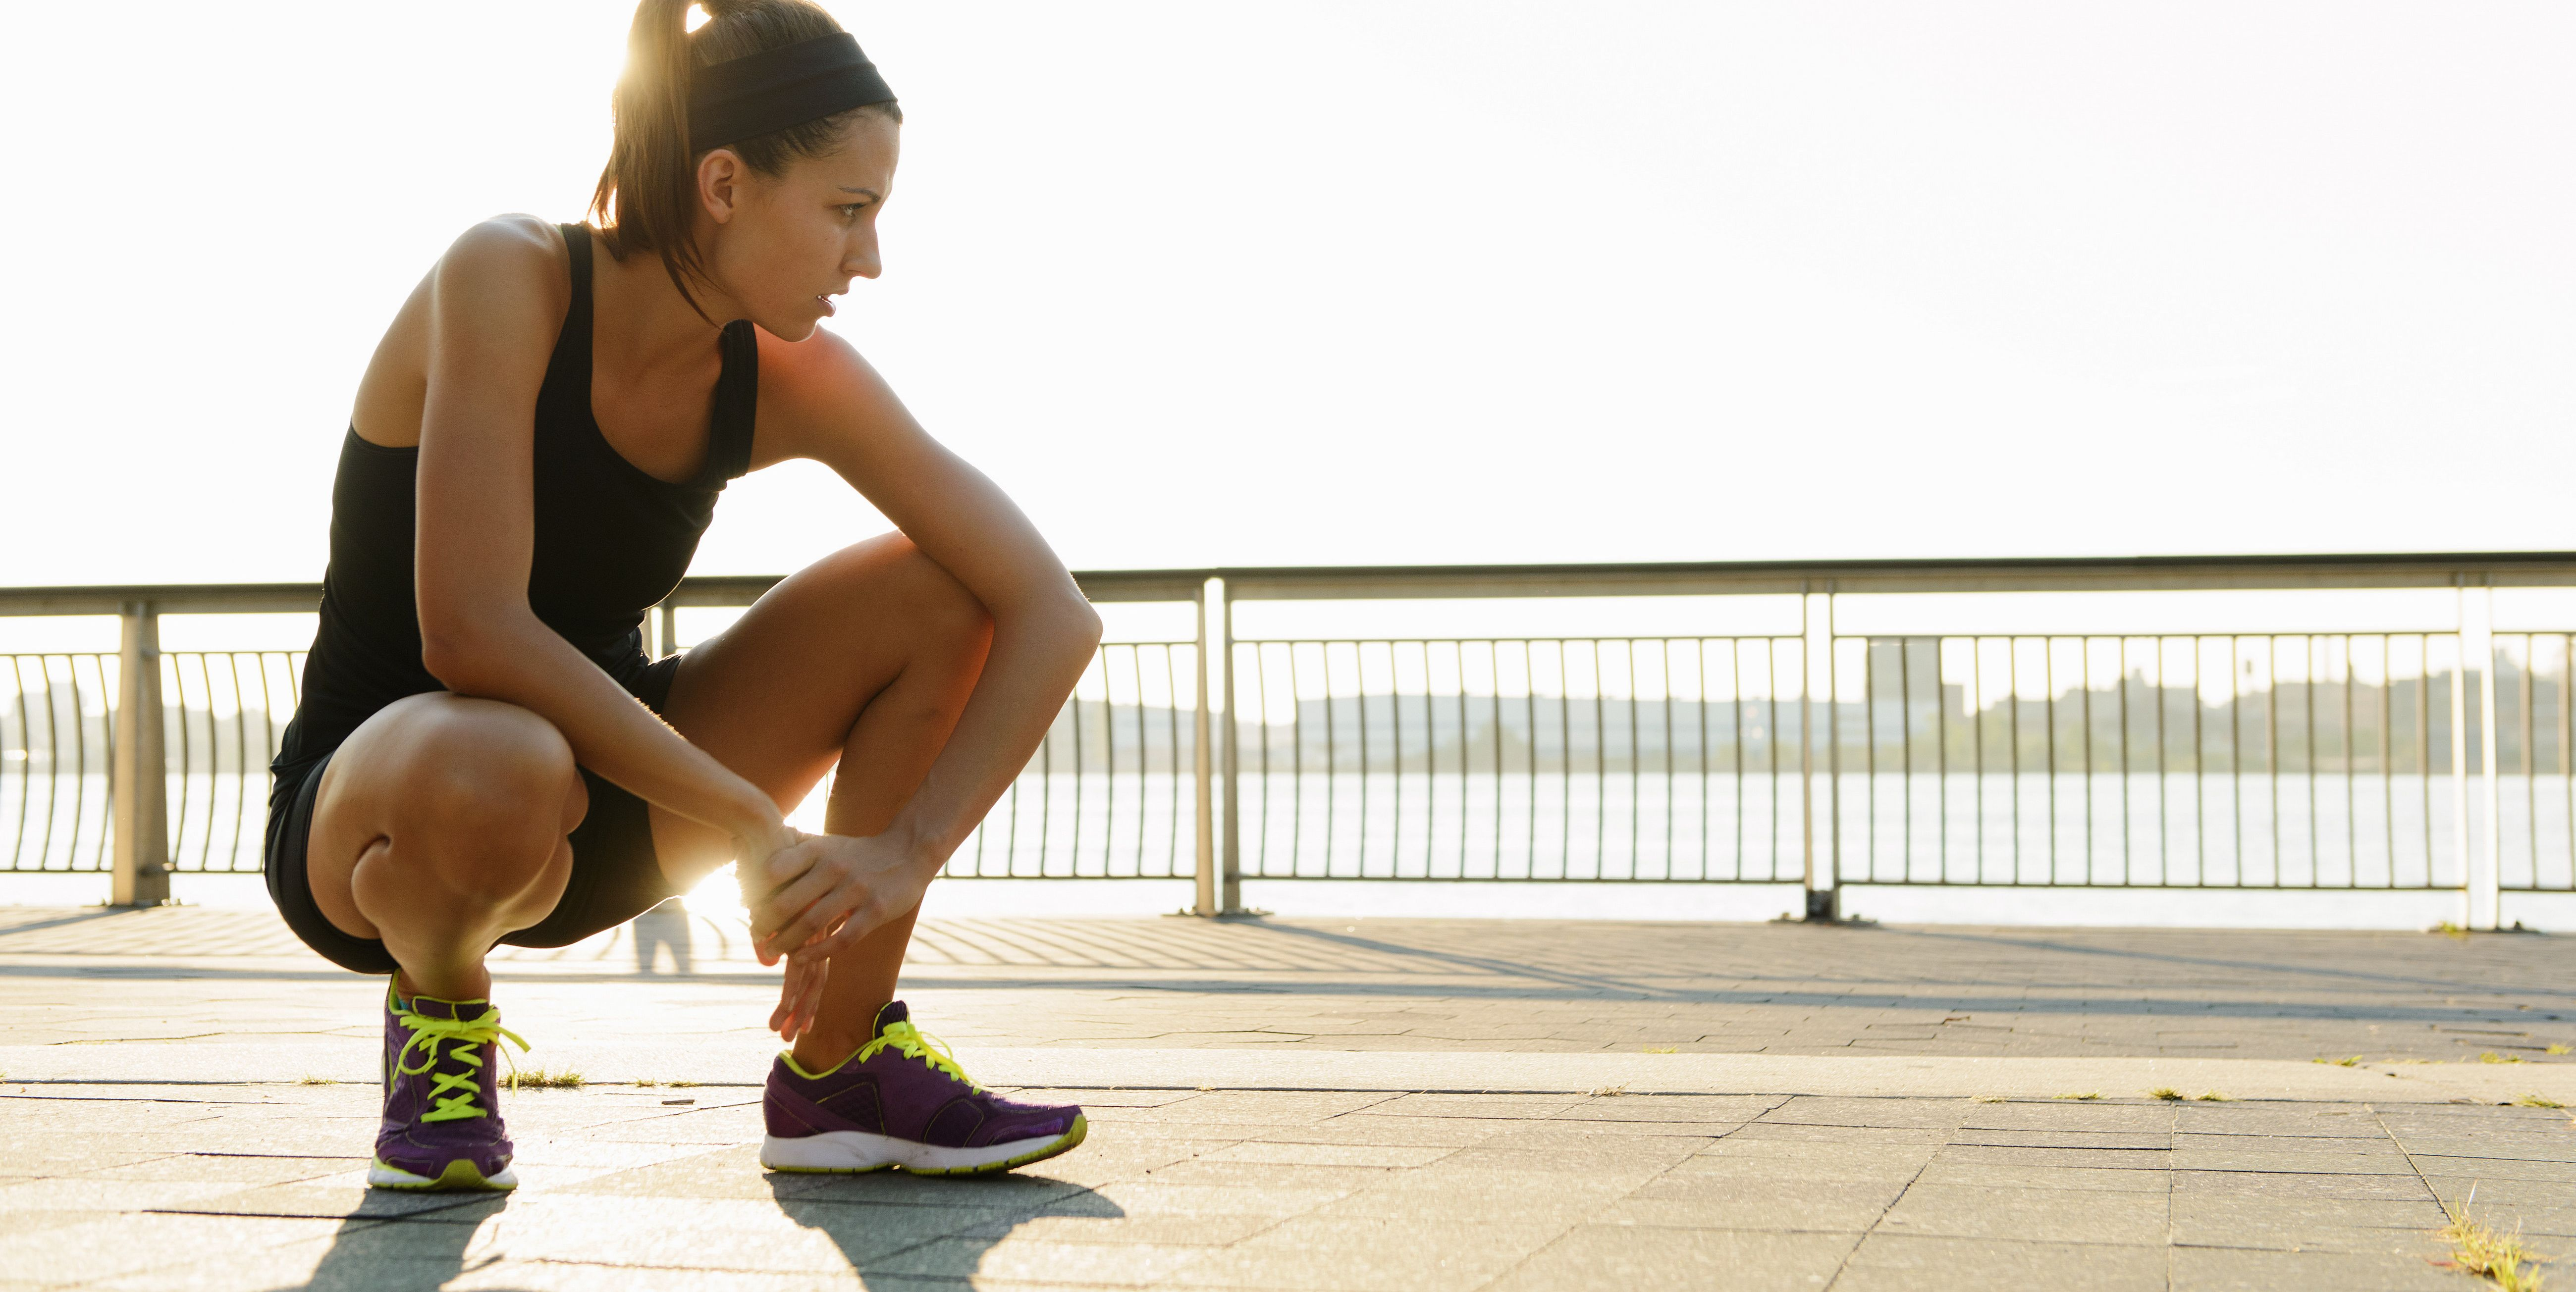 Young female jogger crouching and out of breath